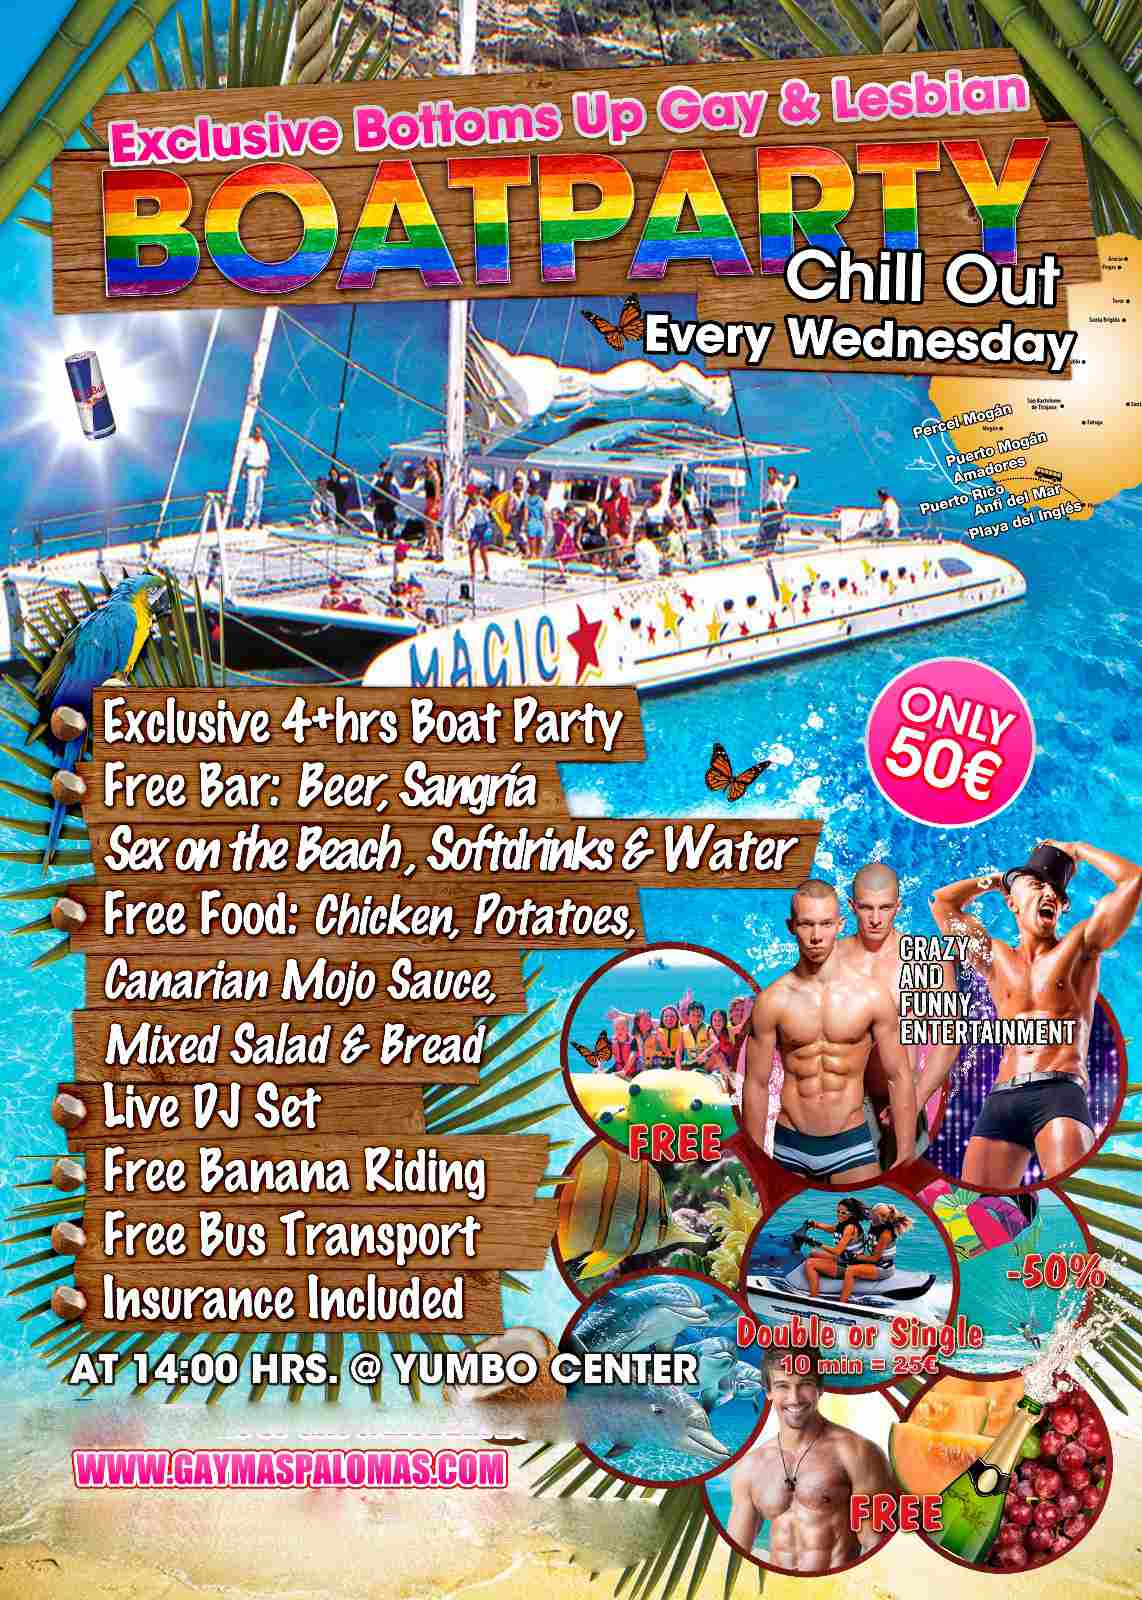 Gay Boat Party Gran Canaria